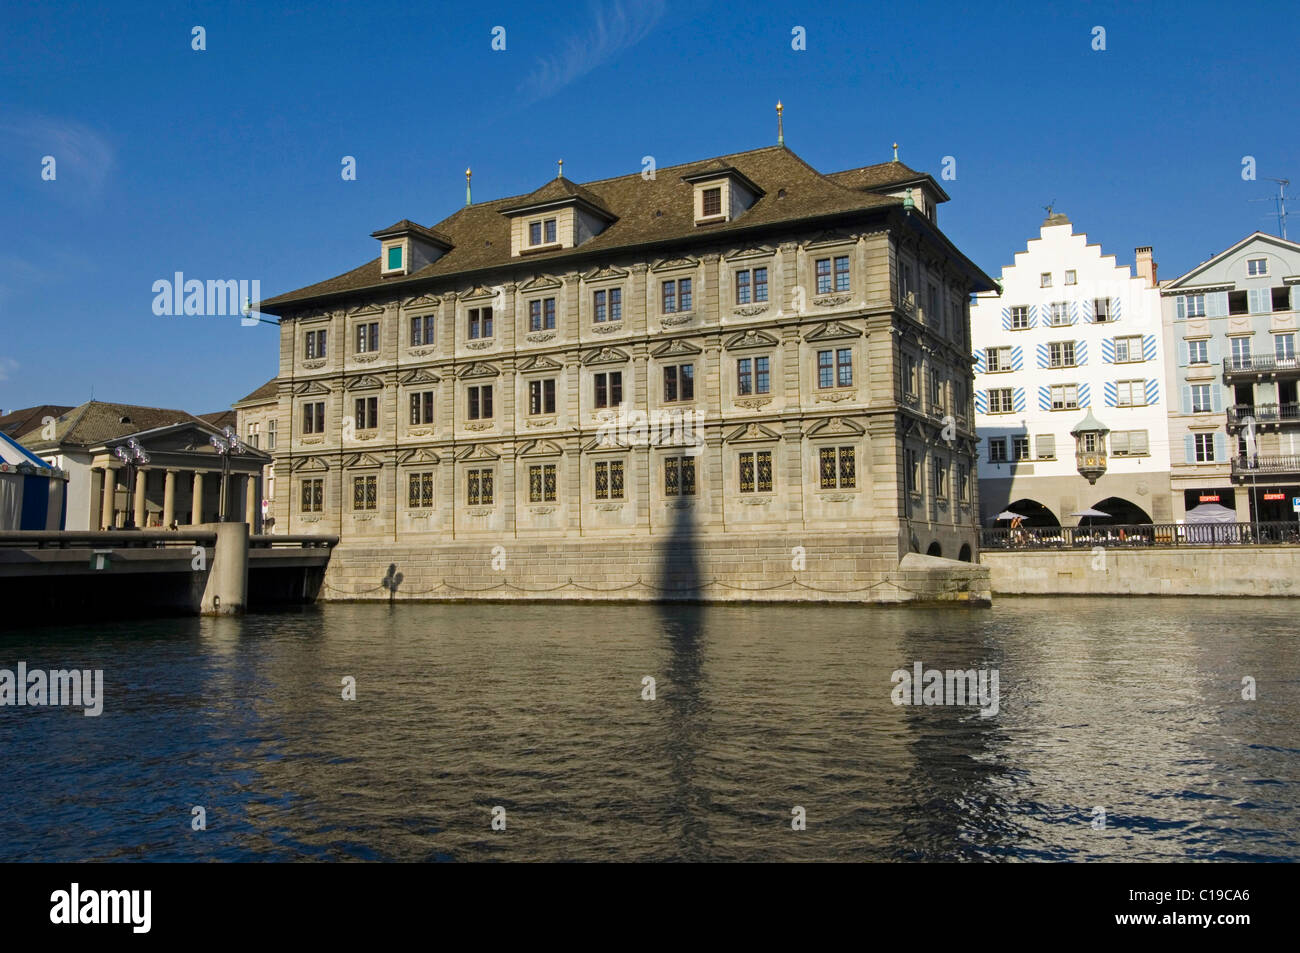 Zurich City Hall behind the Limmat River, Switzerland, Europe - Stock Image